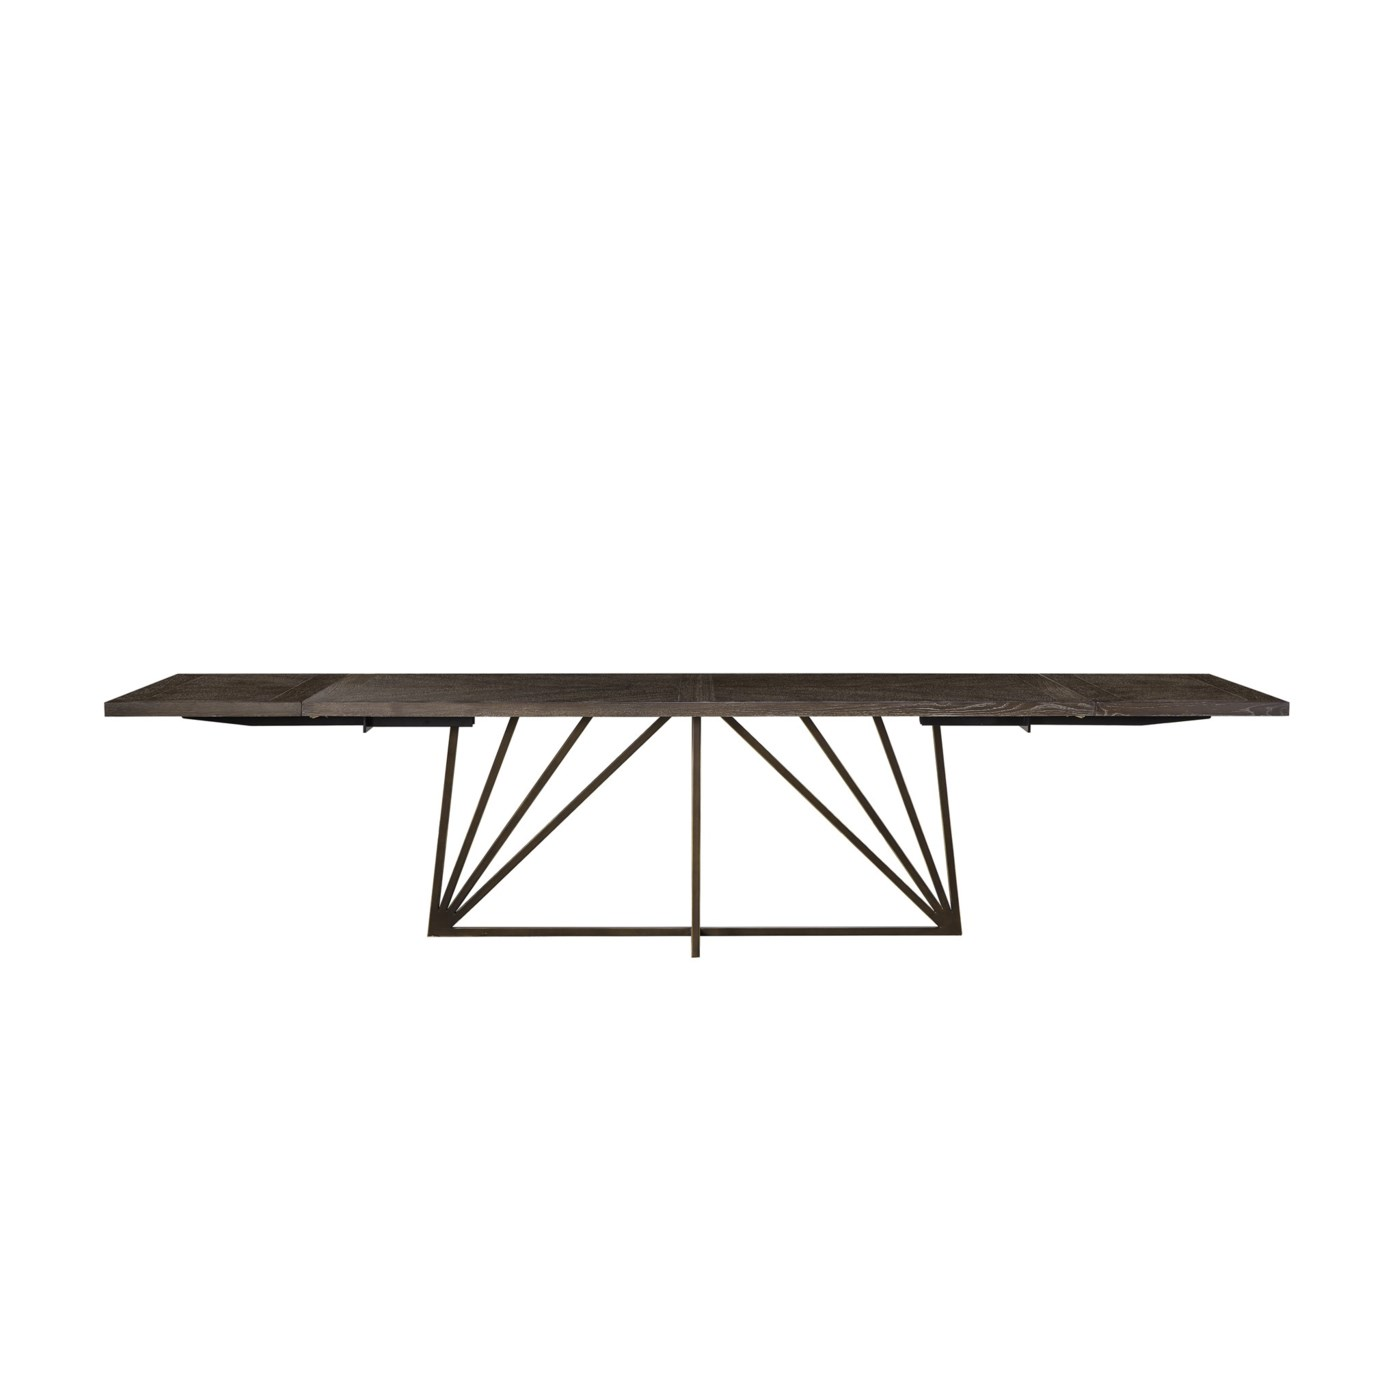 Emerson Dining Table - Large / Rectangle